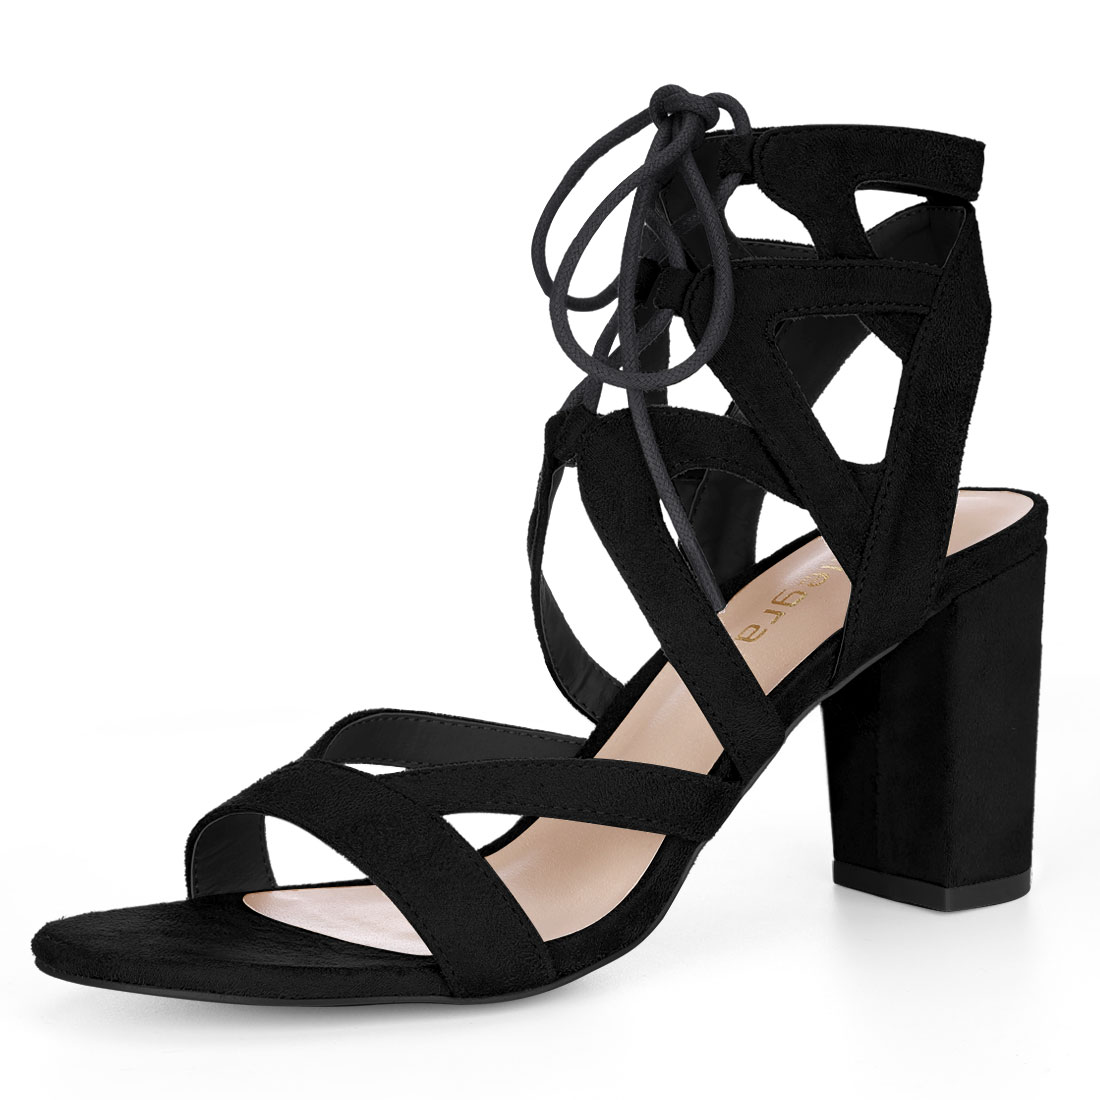 Allegra K Women Cutout Strappy Chunky Heel Lace-Up Sandals Black US 5.5